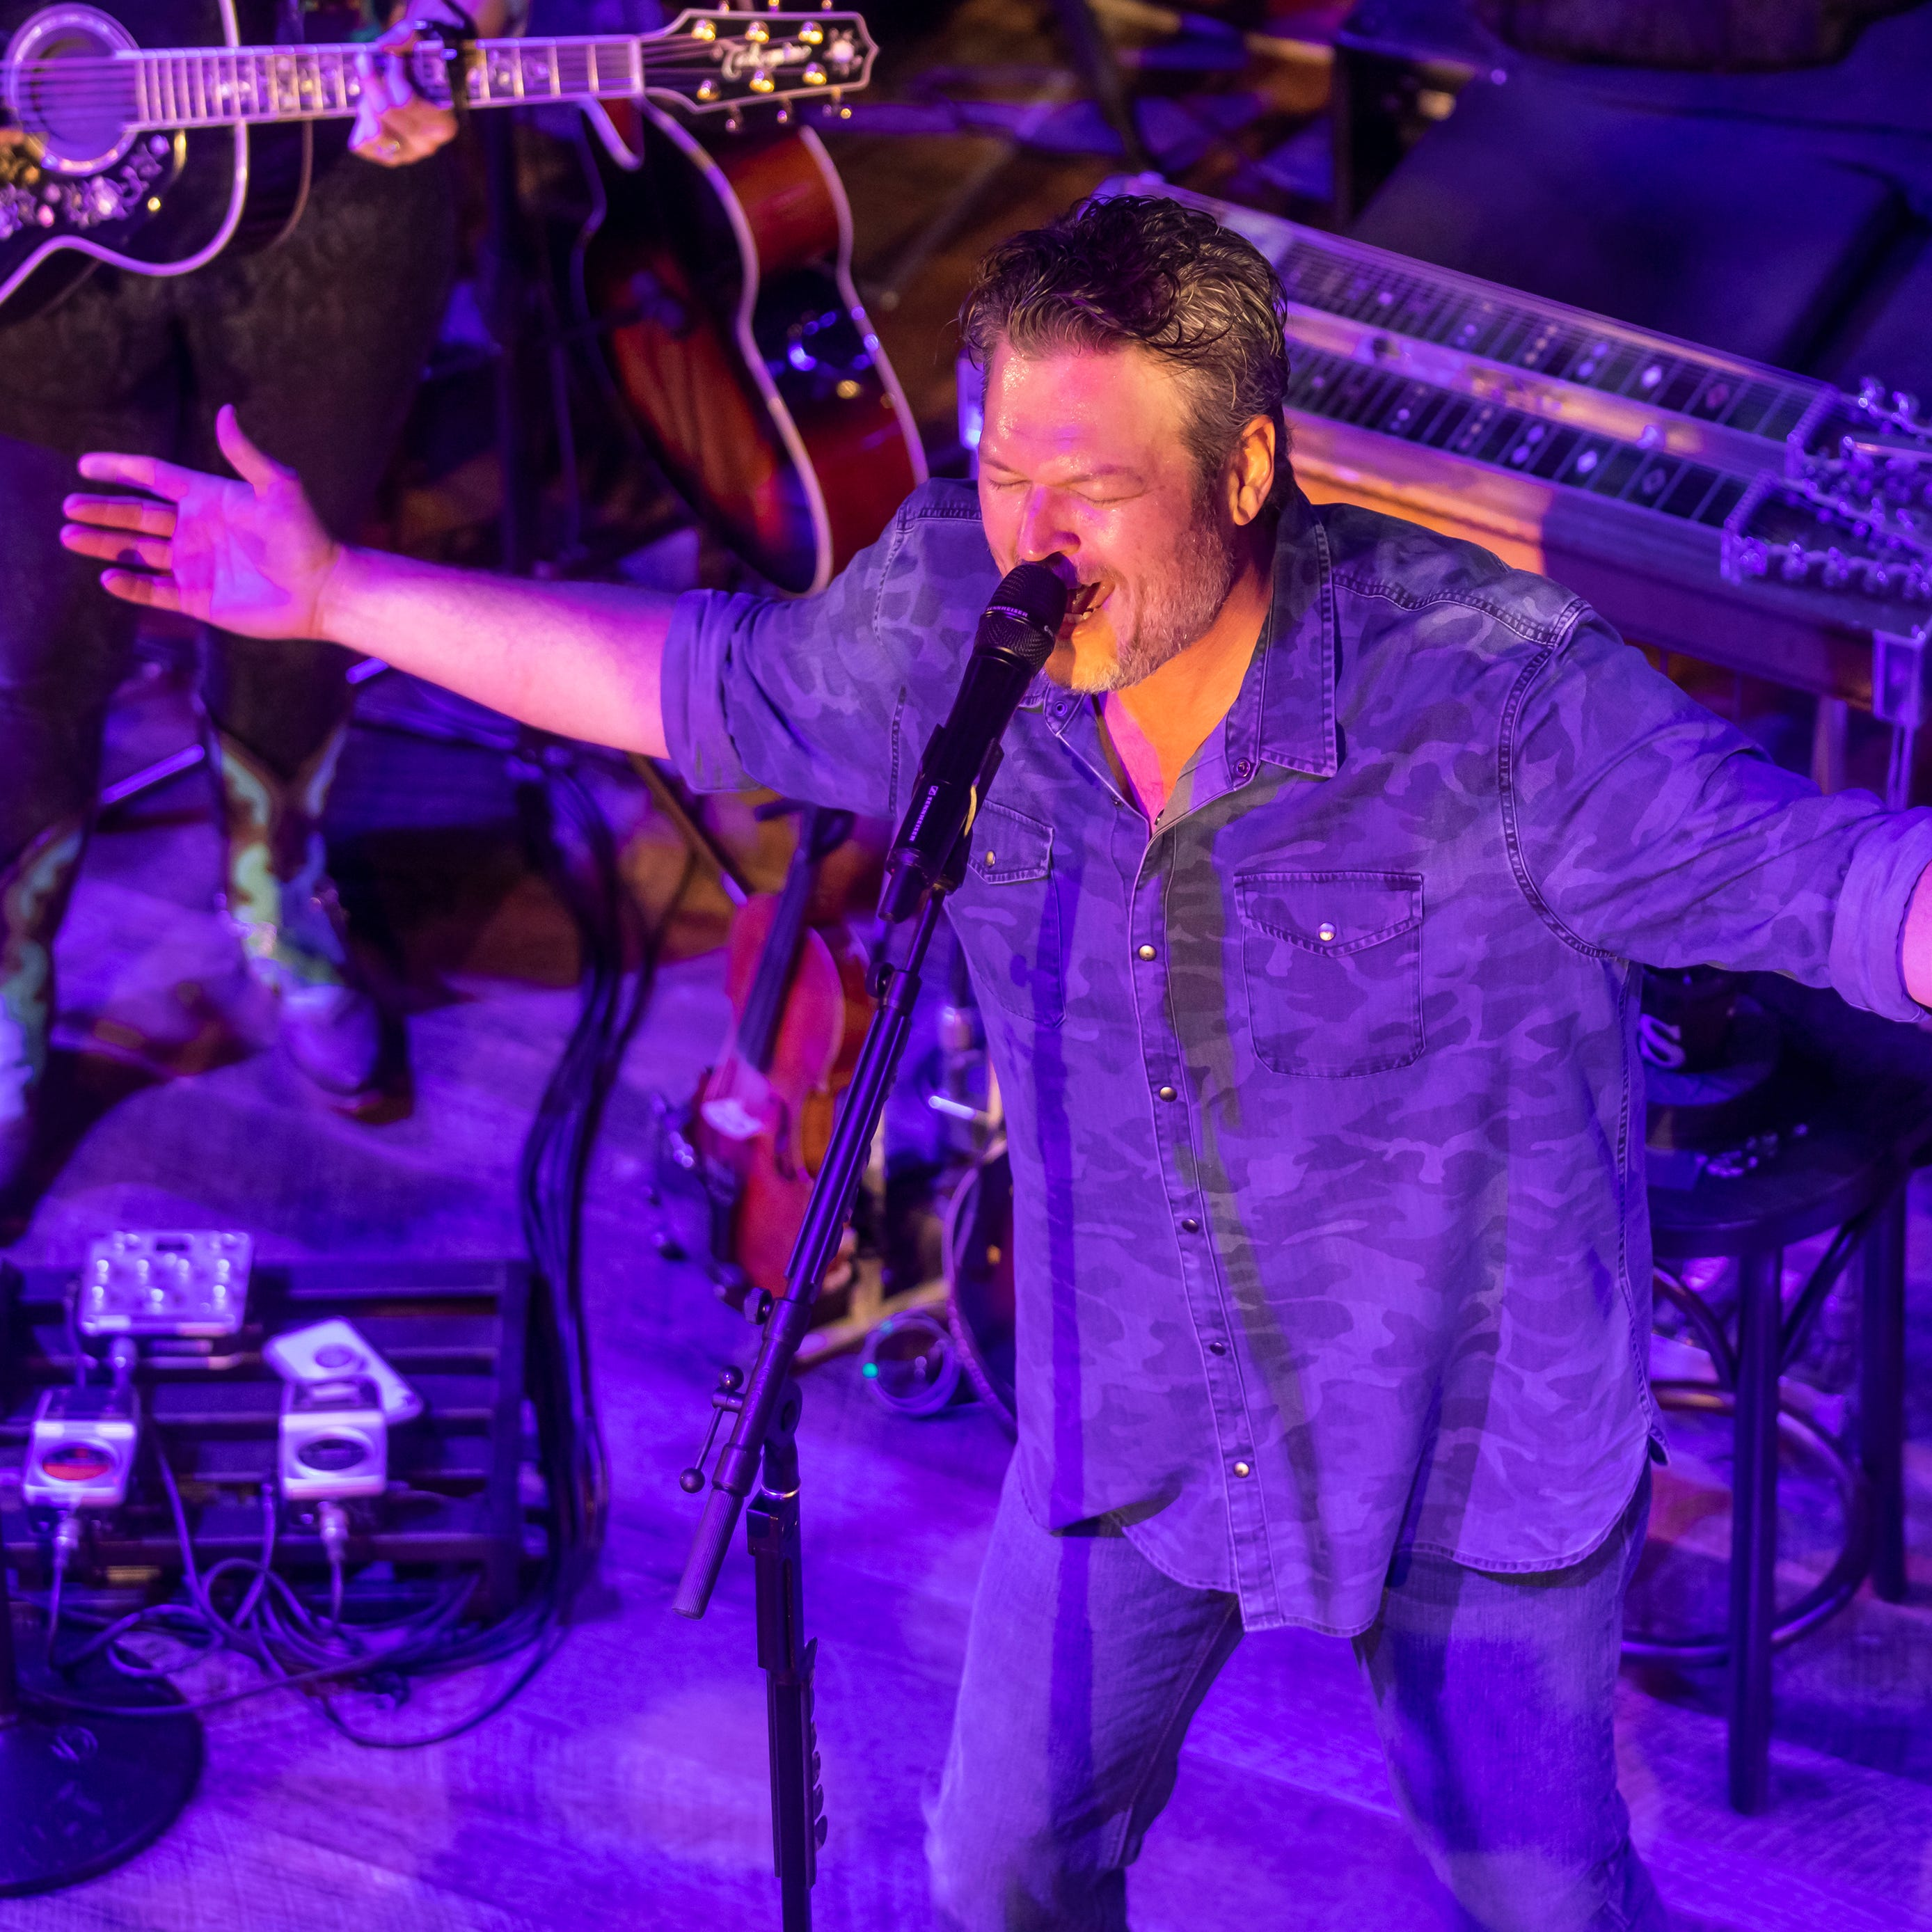 Blake Shelton dives into old hits, delivers fan favorites during two-hour surprise show